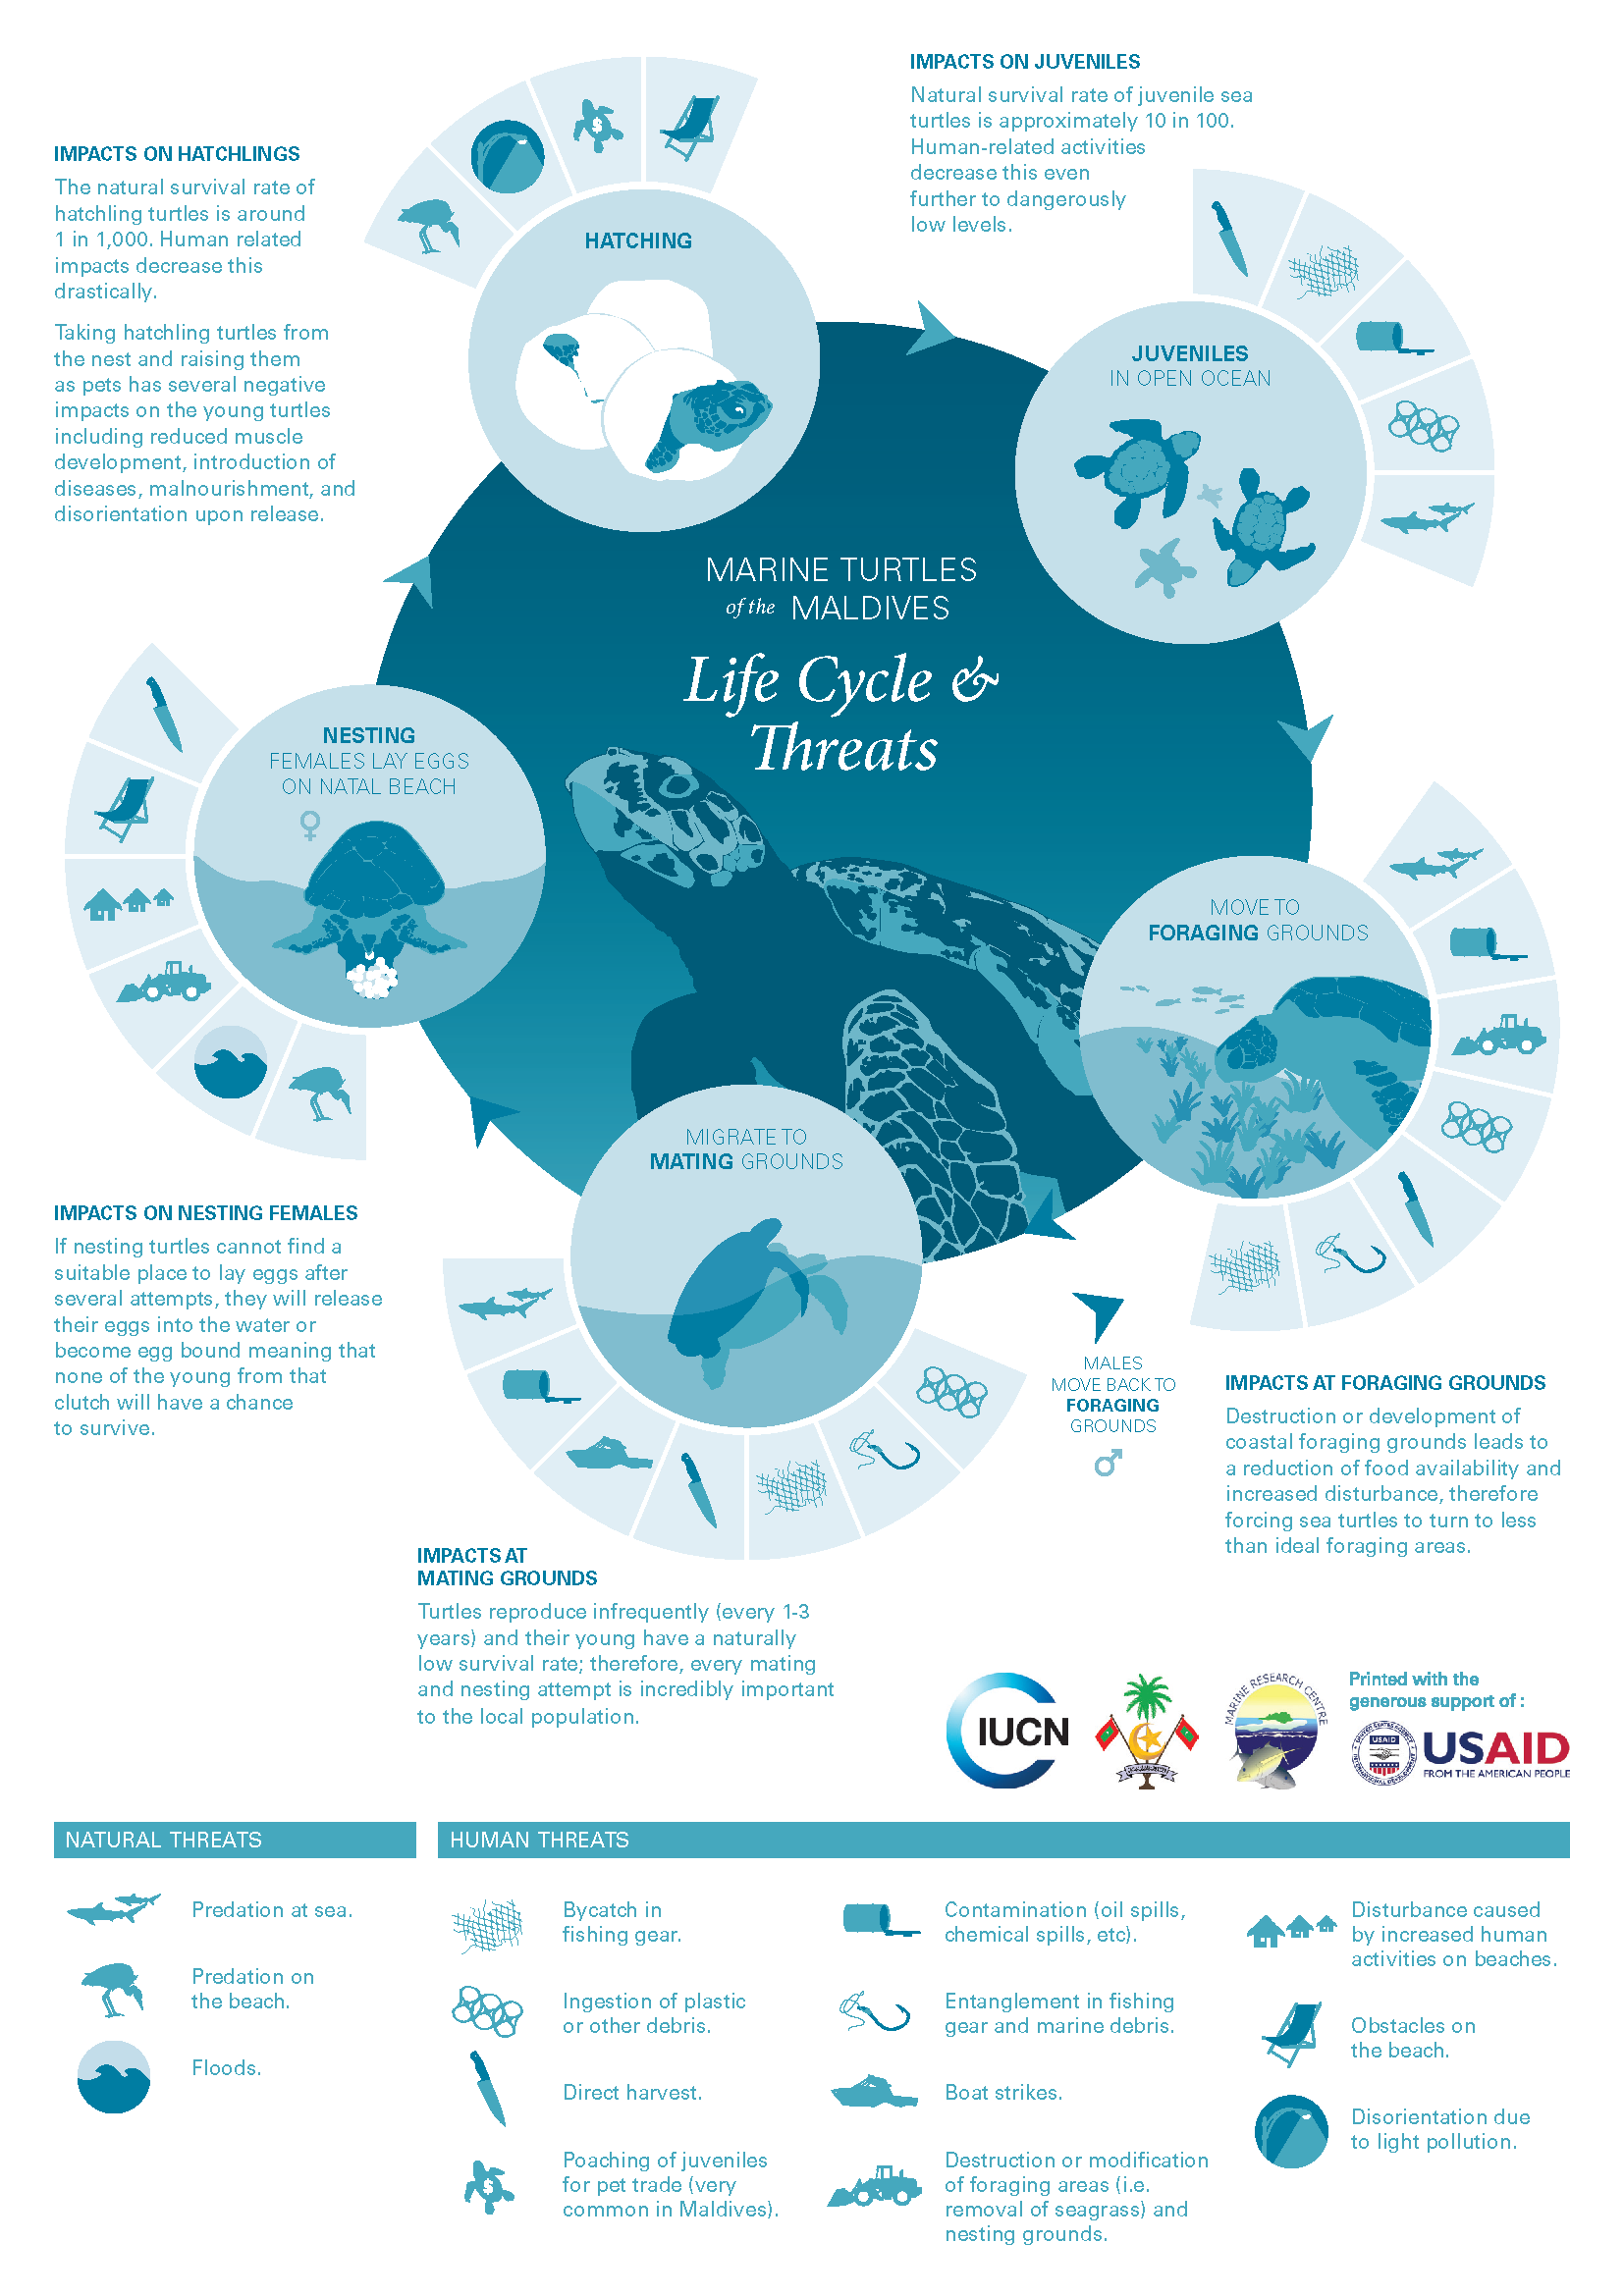 Life cycle of sea turtles diagram threats to sea turtles Olive Ridley Project